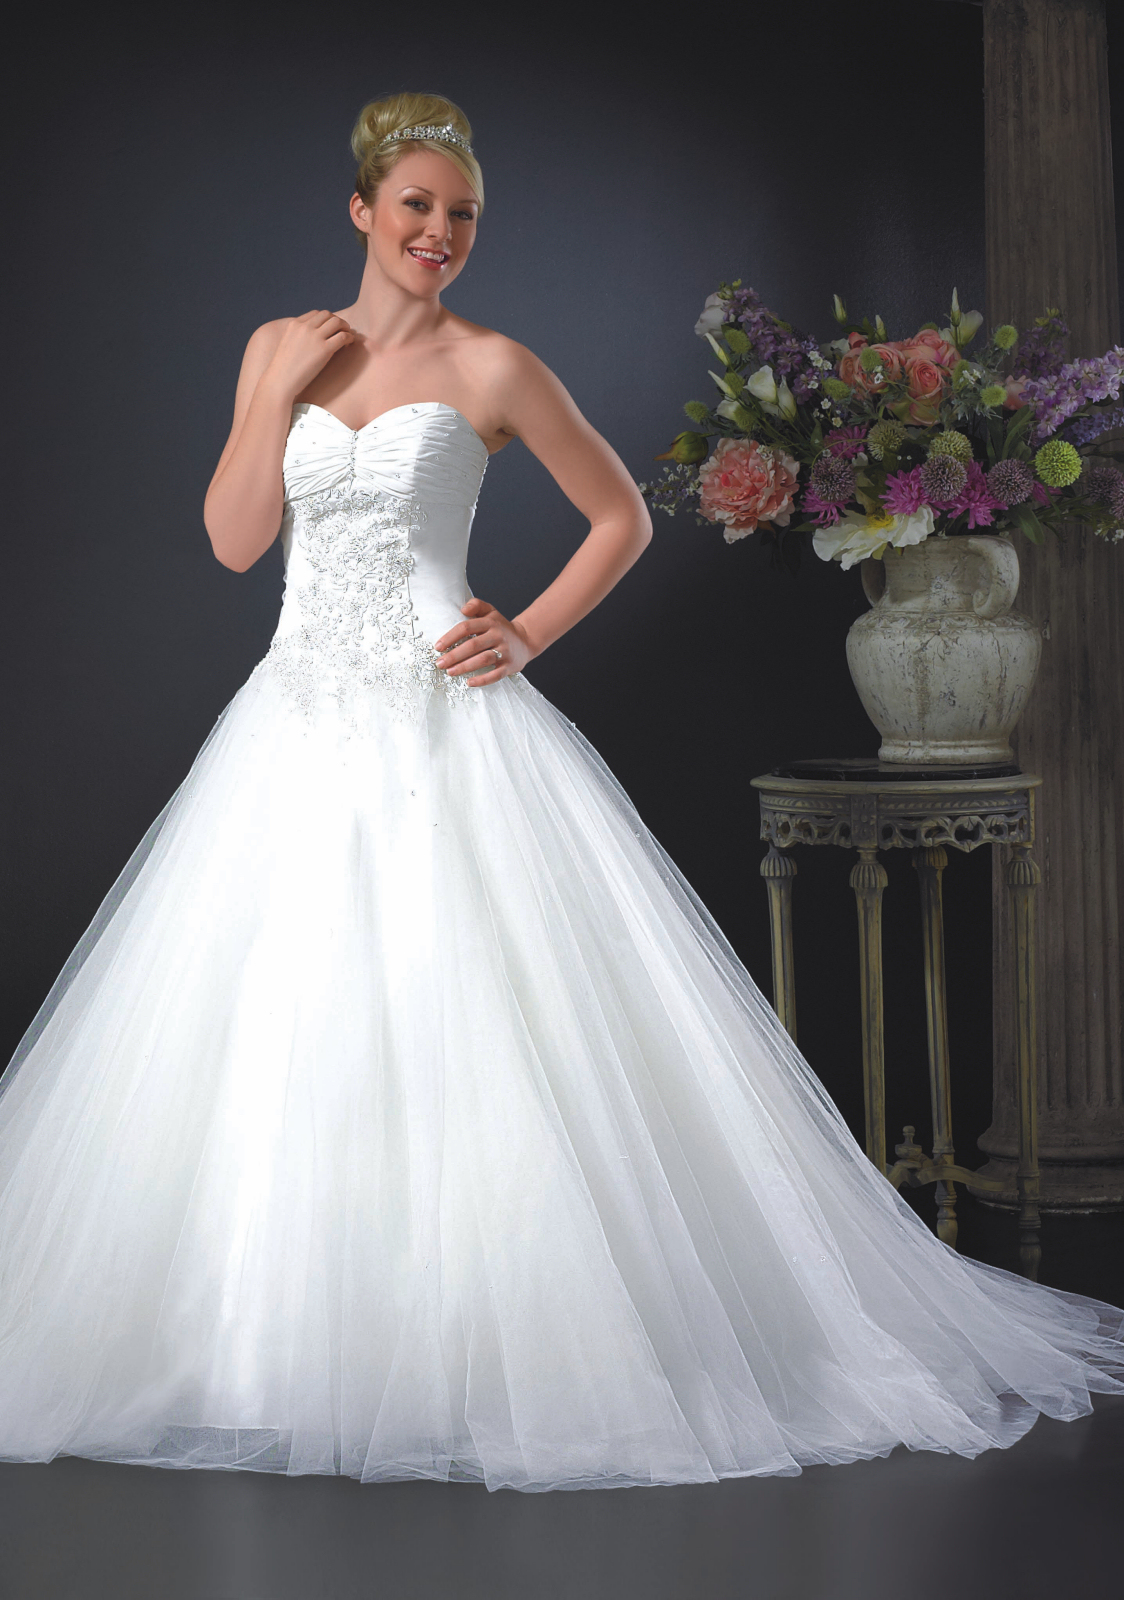 Wedding dresses for rent in phoenix az flower girl dresses for Rent for wedding dress